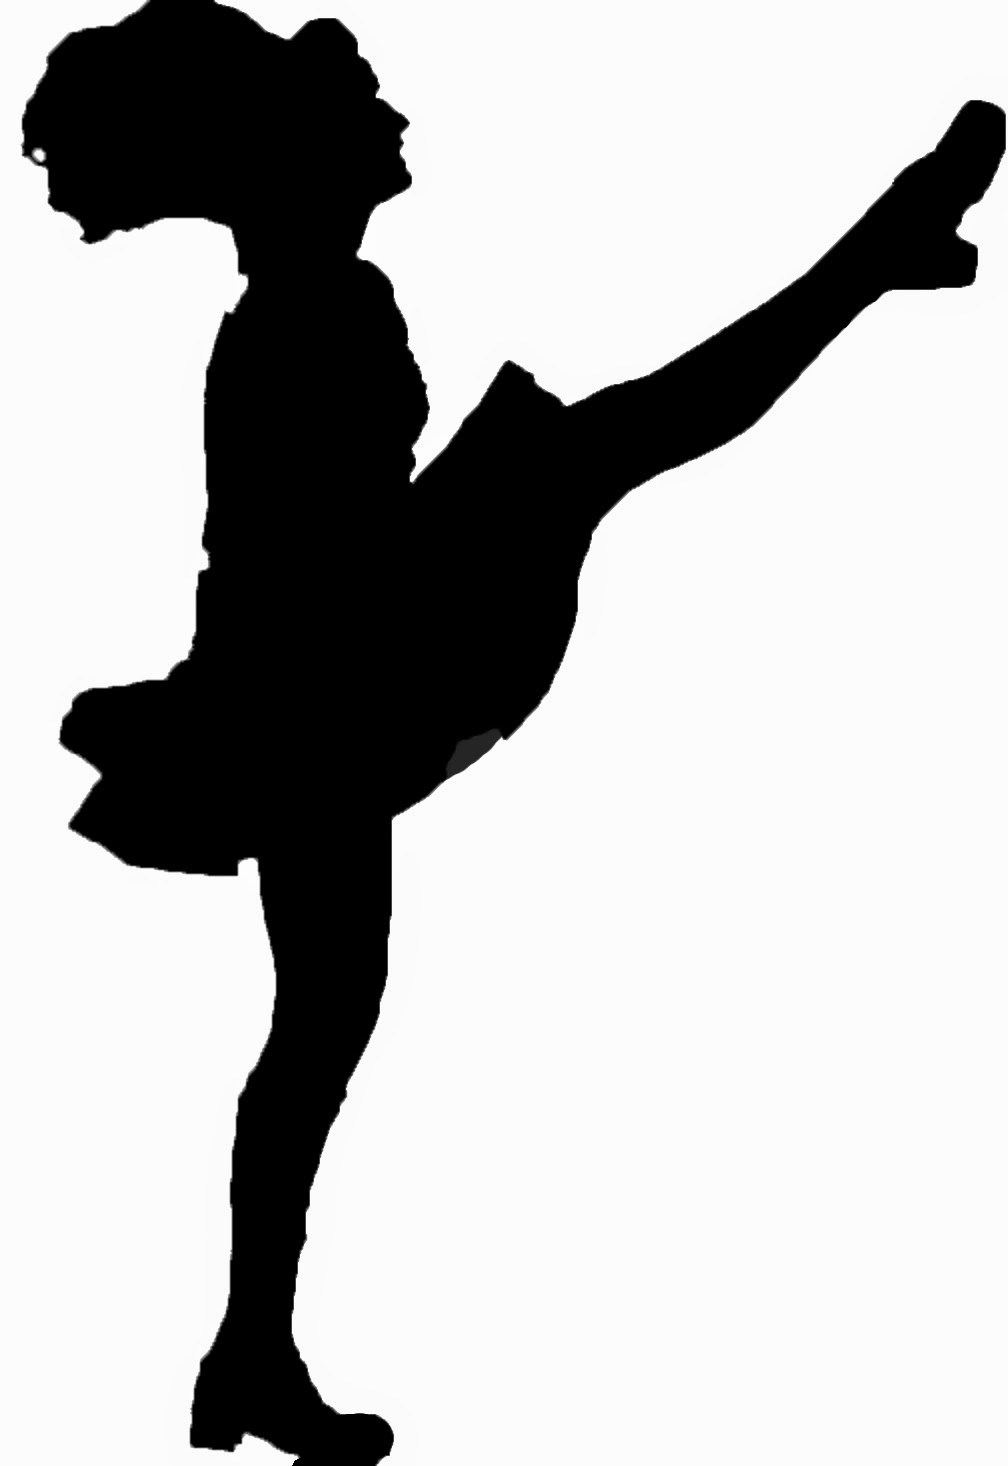 Free Irish Dance Cliparts, Download Free Clip Art, Free Clip Art on.